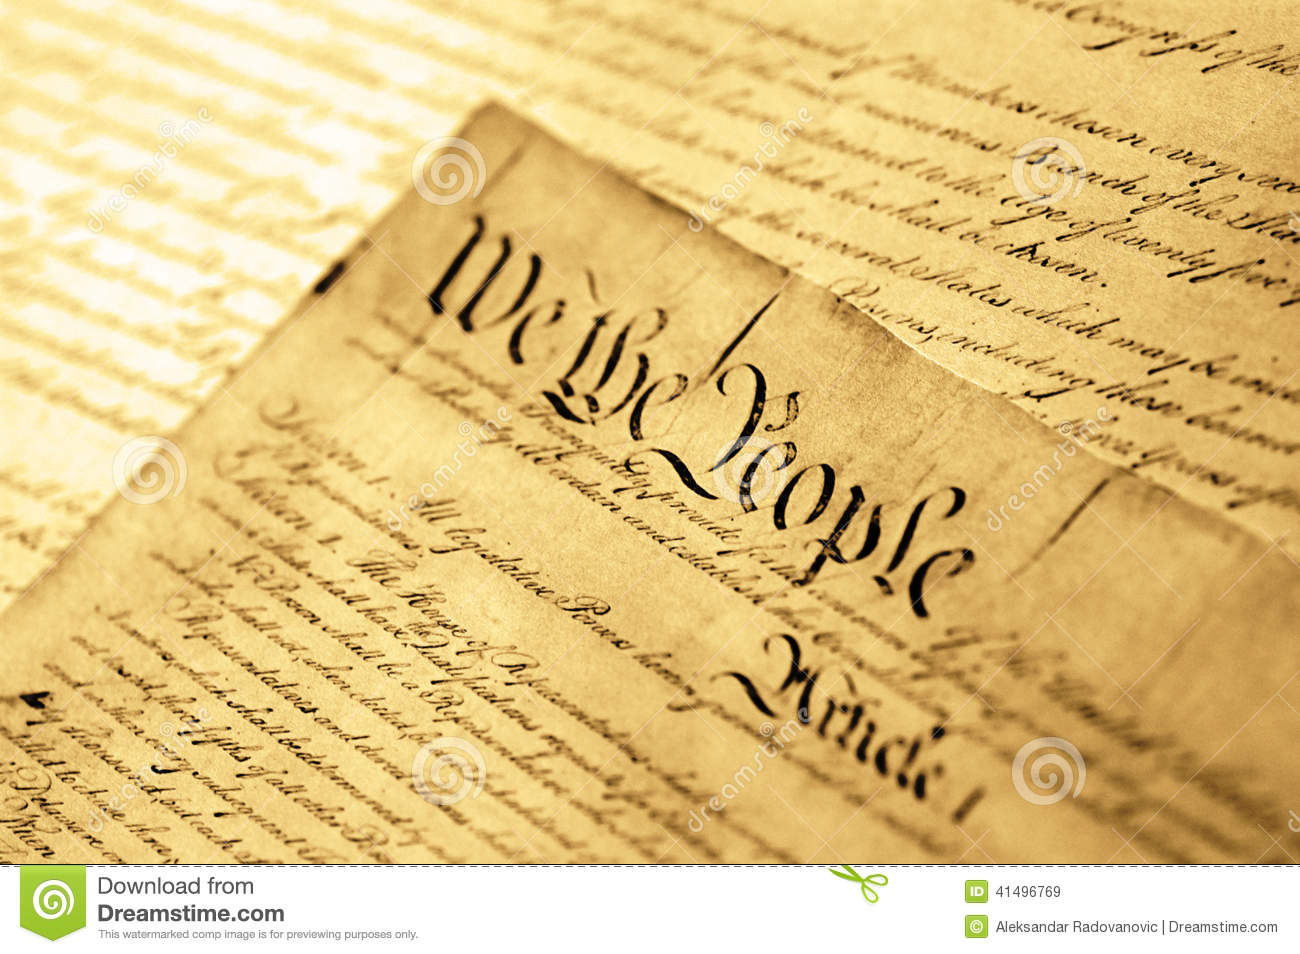 a history of the declaration of independence of the united states Government to the declaration of independence (version 1 or 2) b the unanimous declaration of the thirteen united states of america the history of the present king of great britain is a history of.